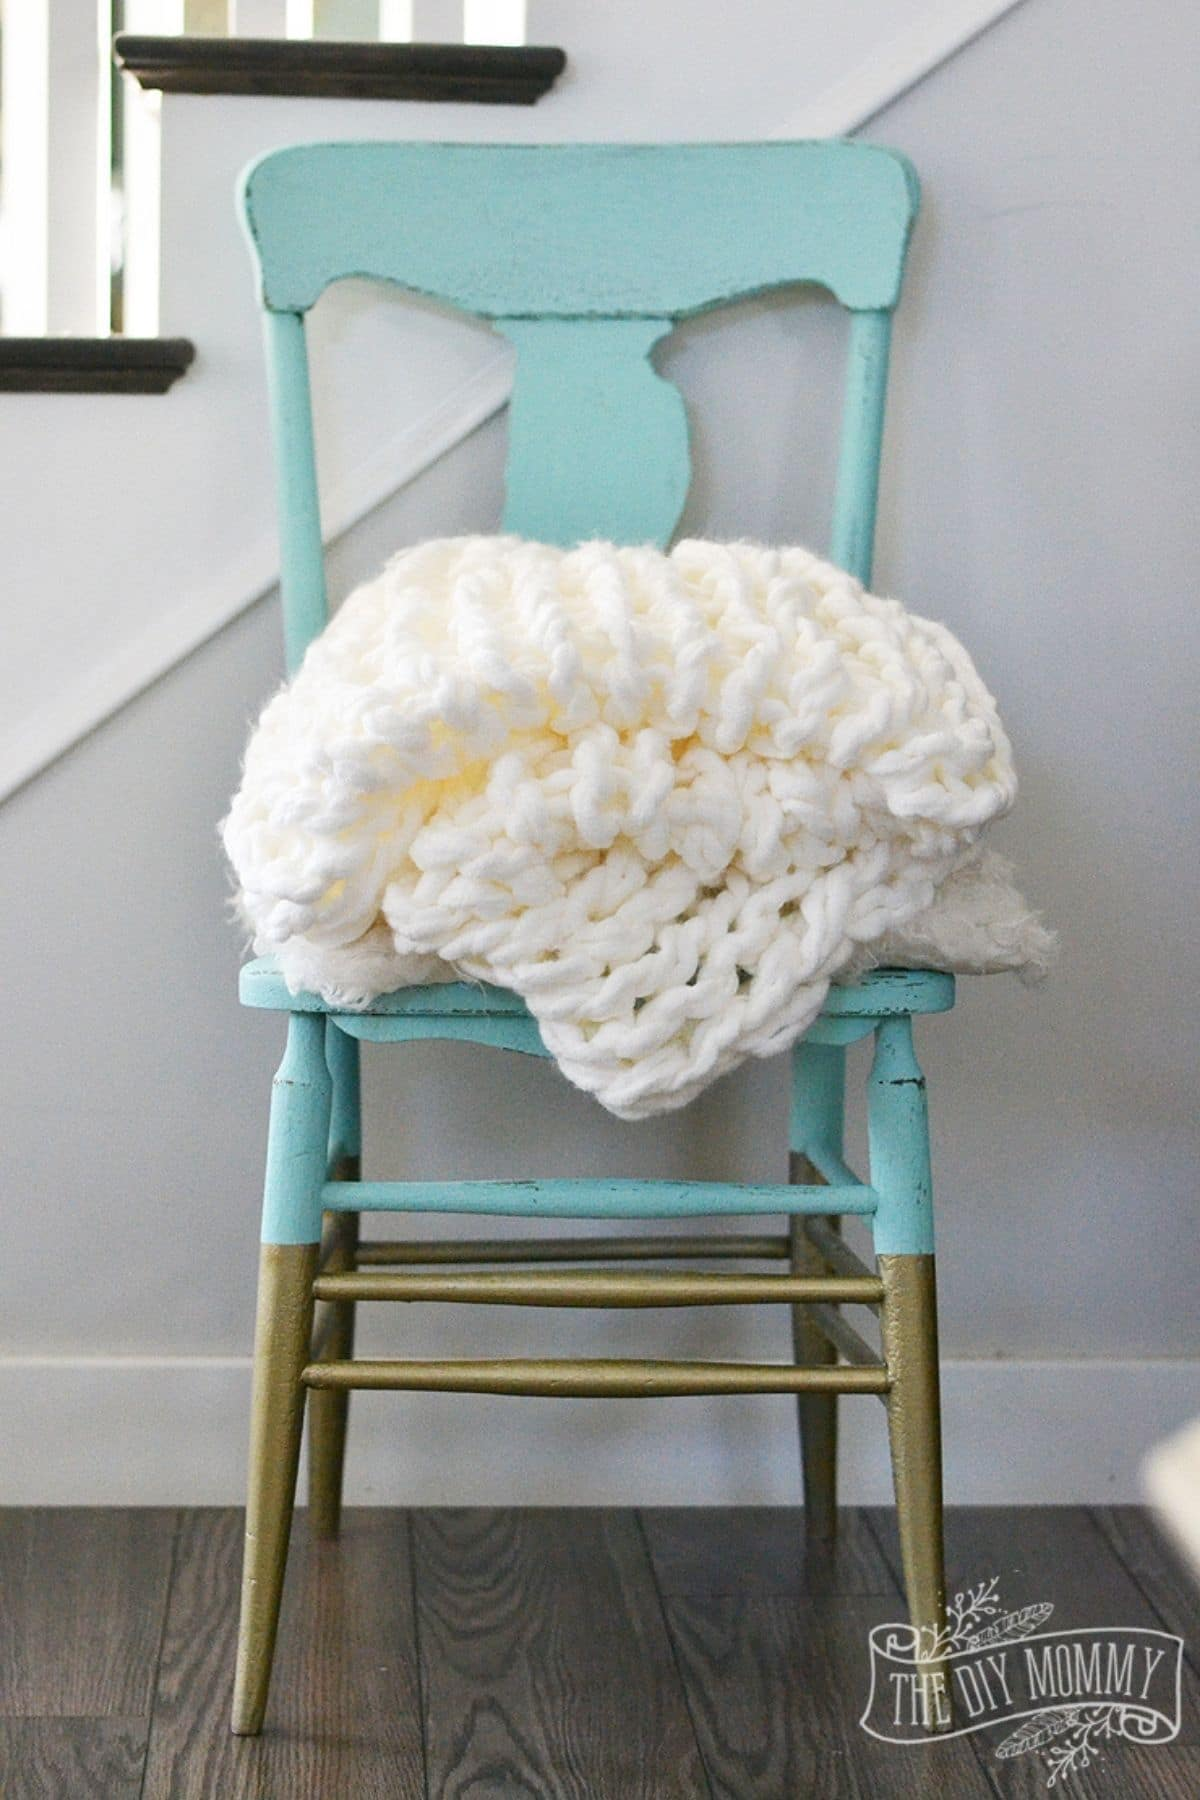 Knit blanket on chair